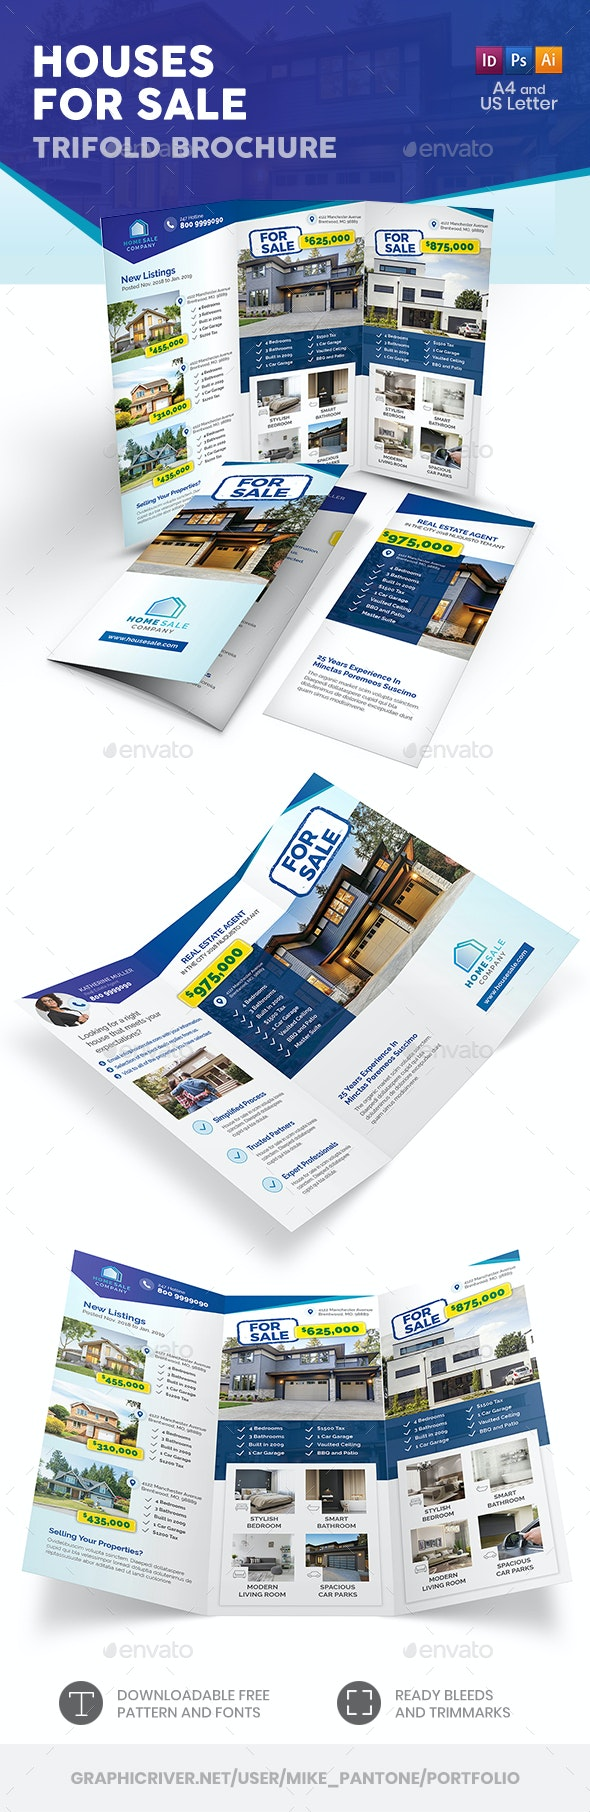 Houses For Sale Trifold Brochure - Informational Brochures